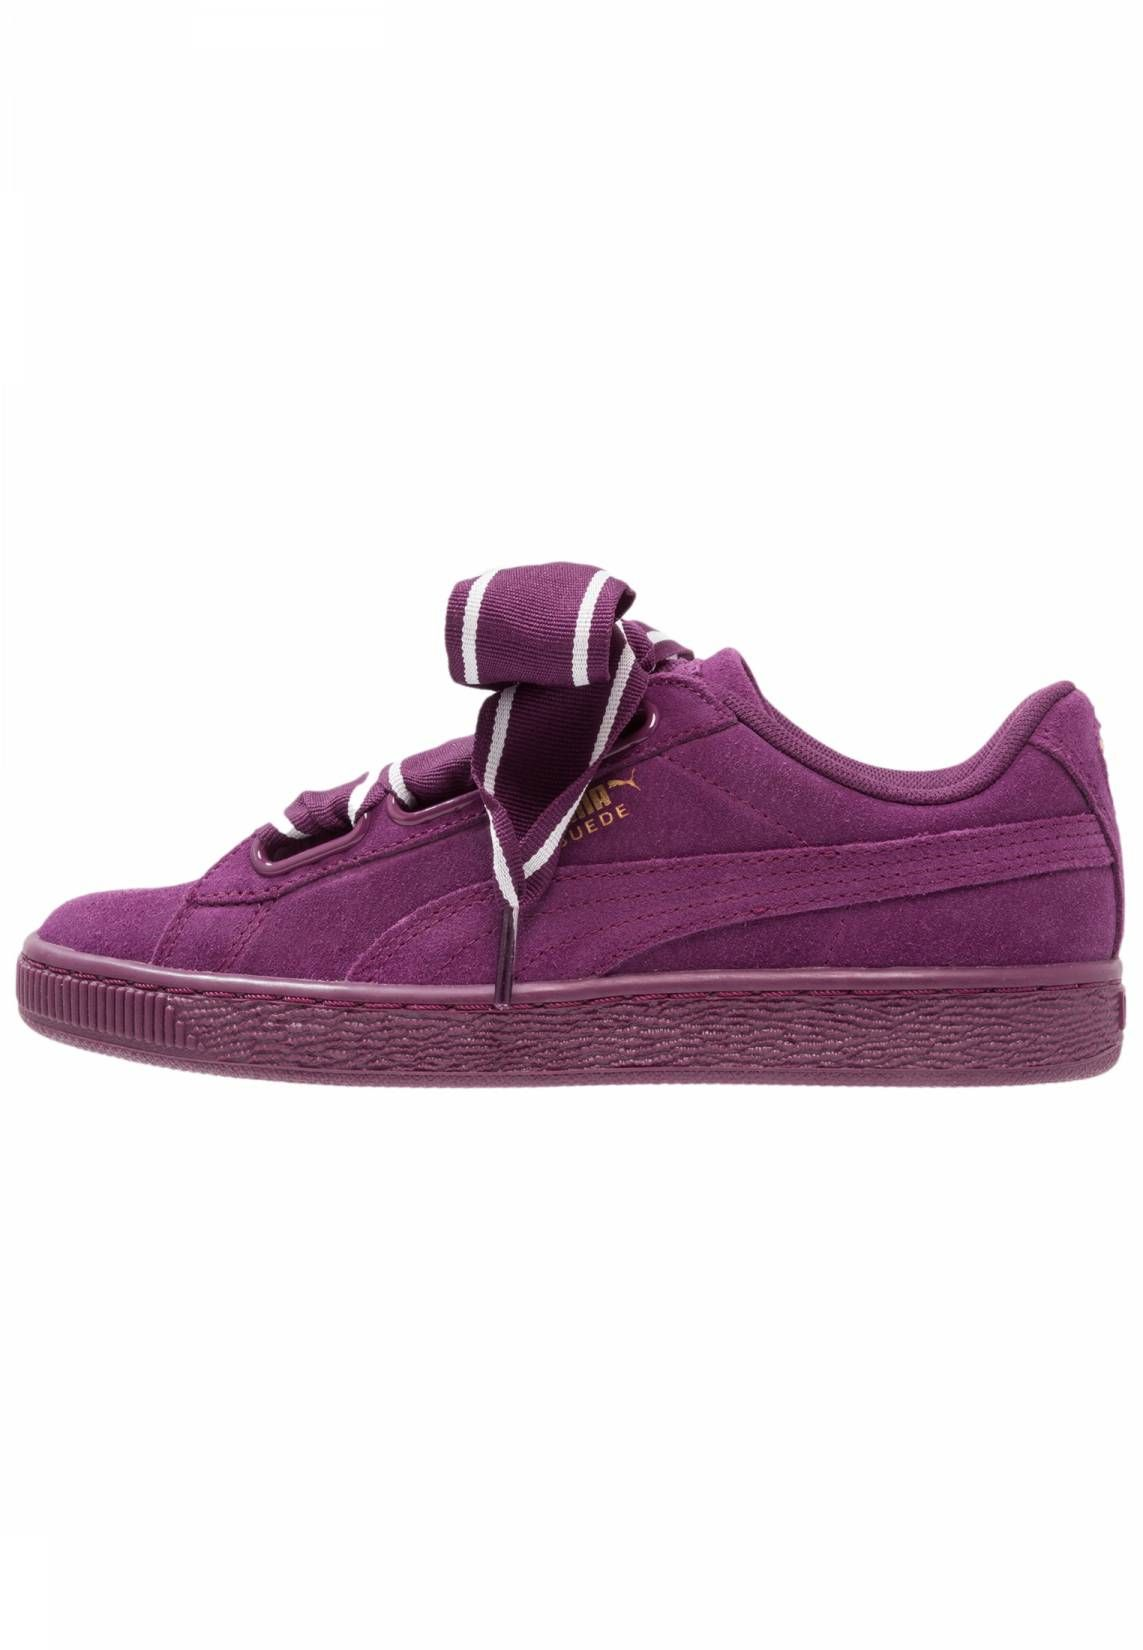 8ee5eefe72b0 Puma. SUEDE HEART SATIN II - Baskets basses - dark purple. Semelle de  propreté